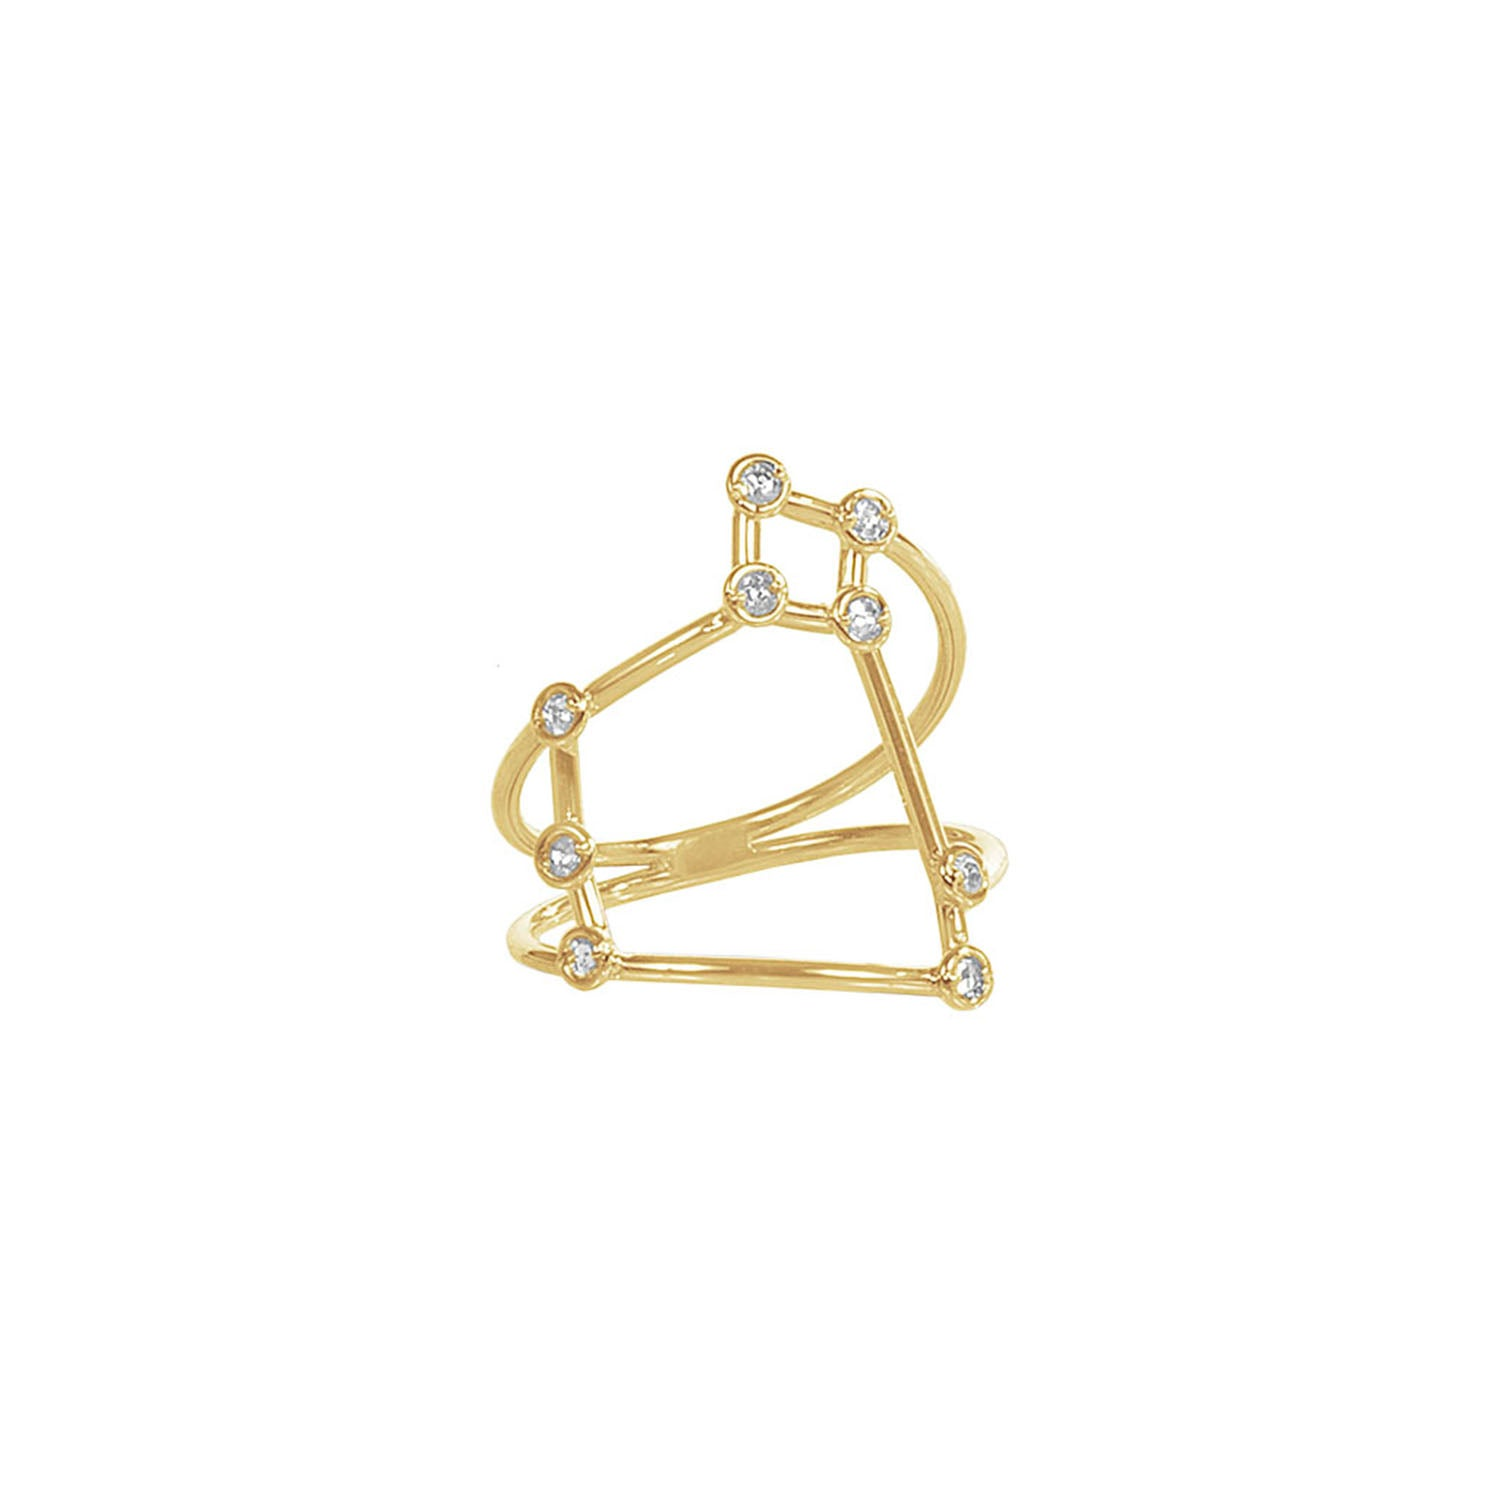 Gold & White Diamond Sagittarius Constellation Ring by Jessie Ve for Broken English Jewelry